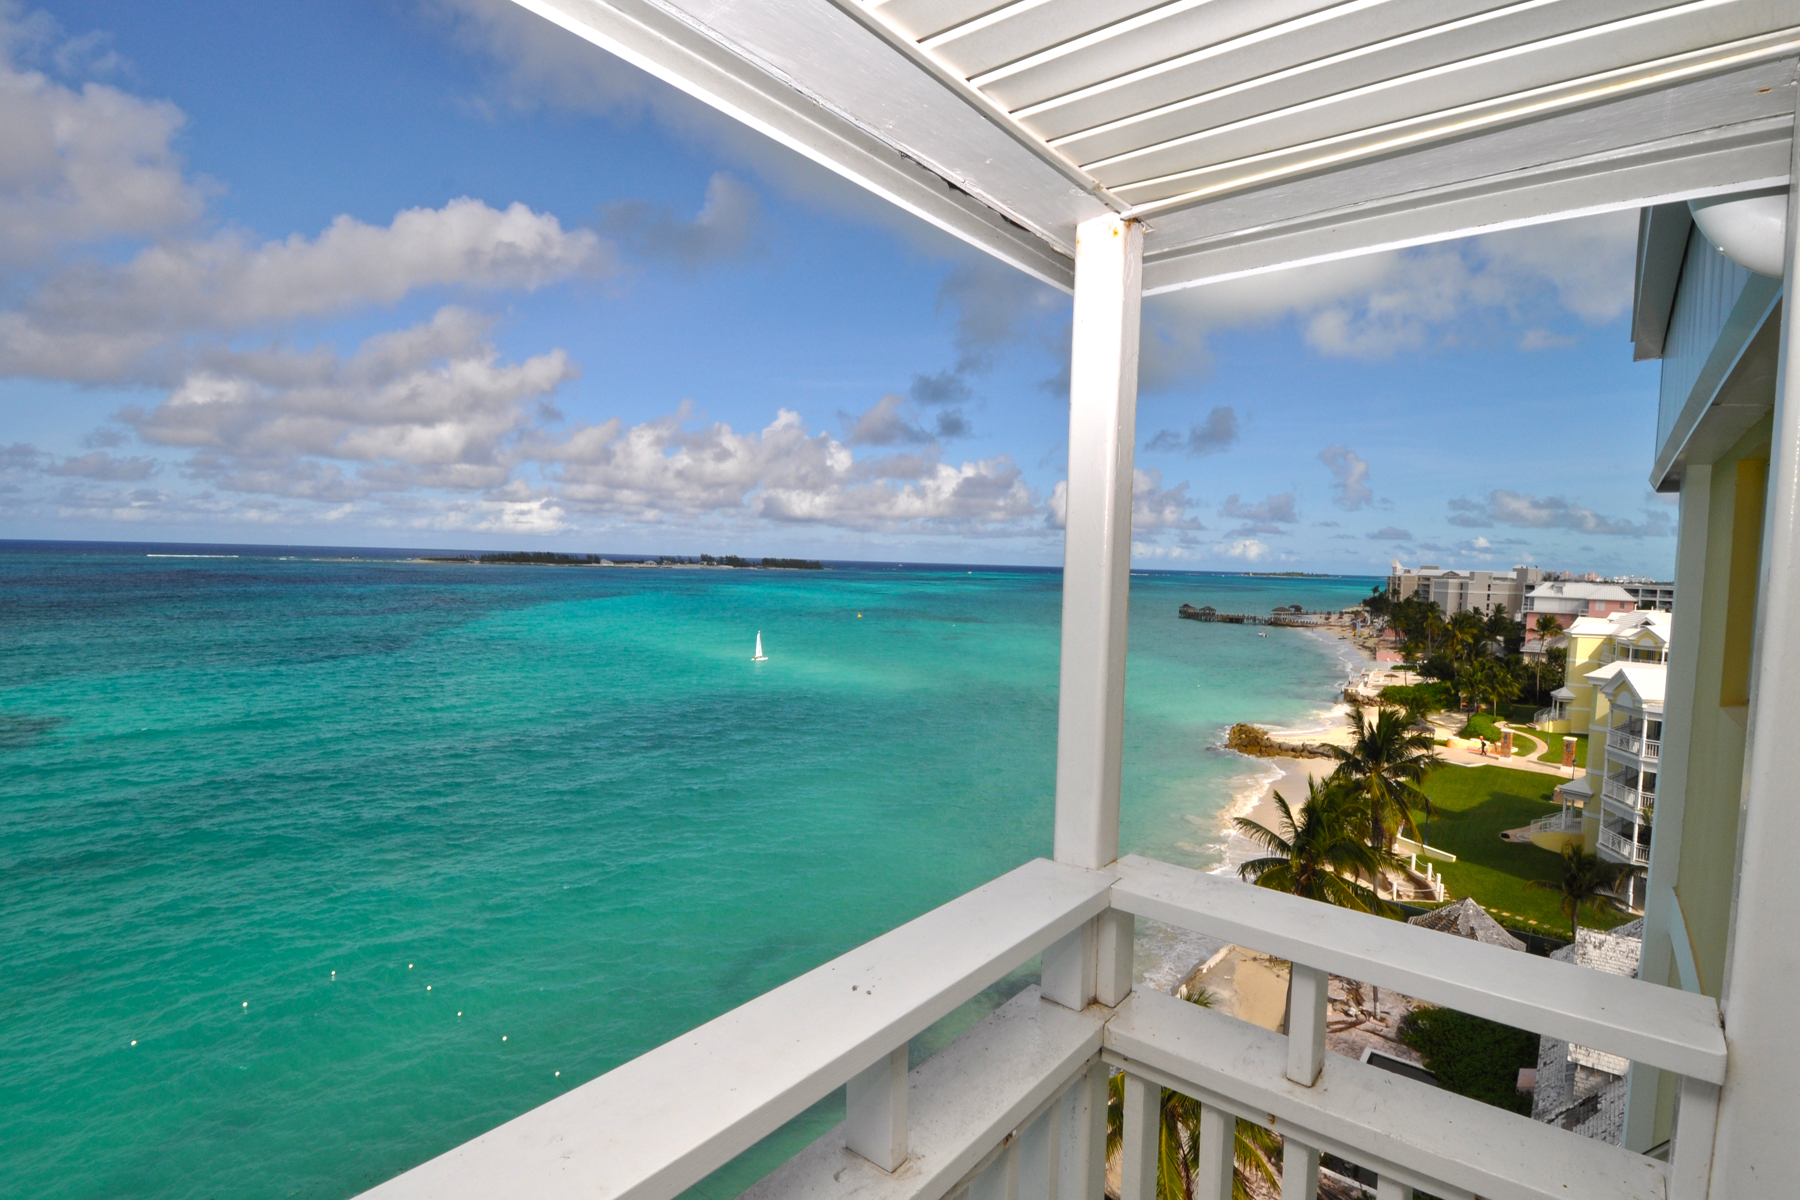 Additional photo for property listing at Conchrest Penthouse, Cable Beach Conchrest, Cable Beach, New Providence/Nassau Bahamas